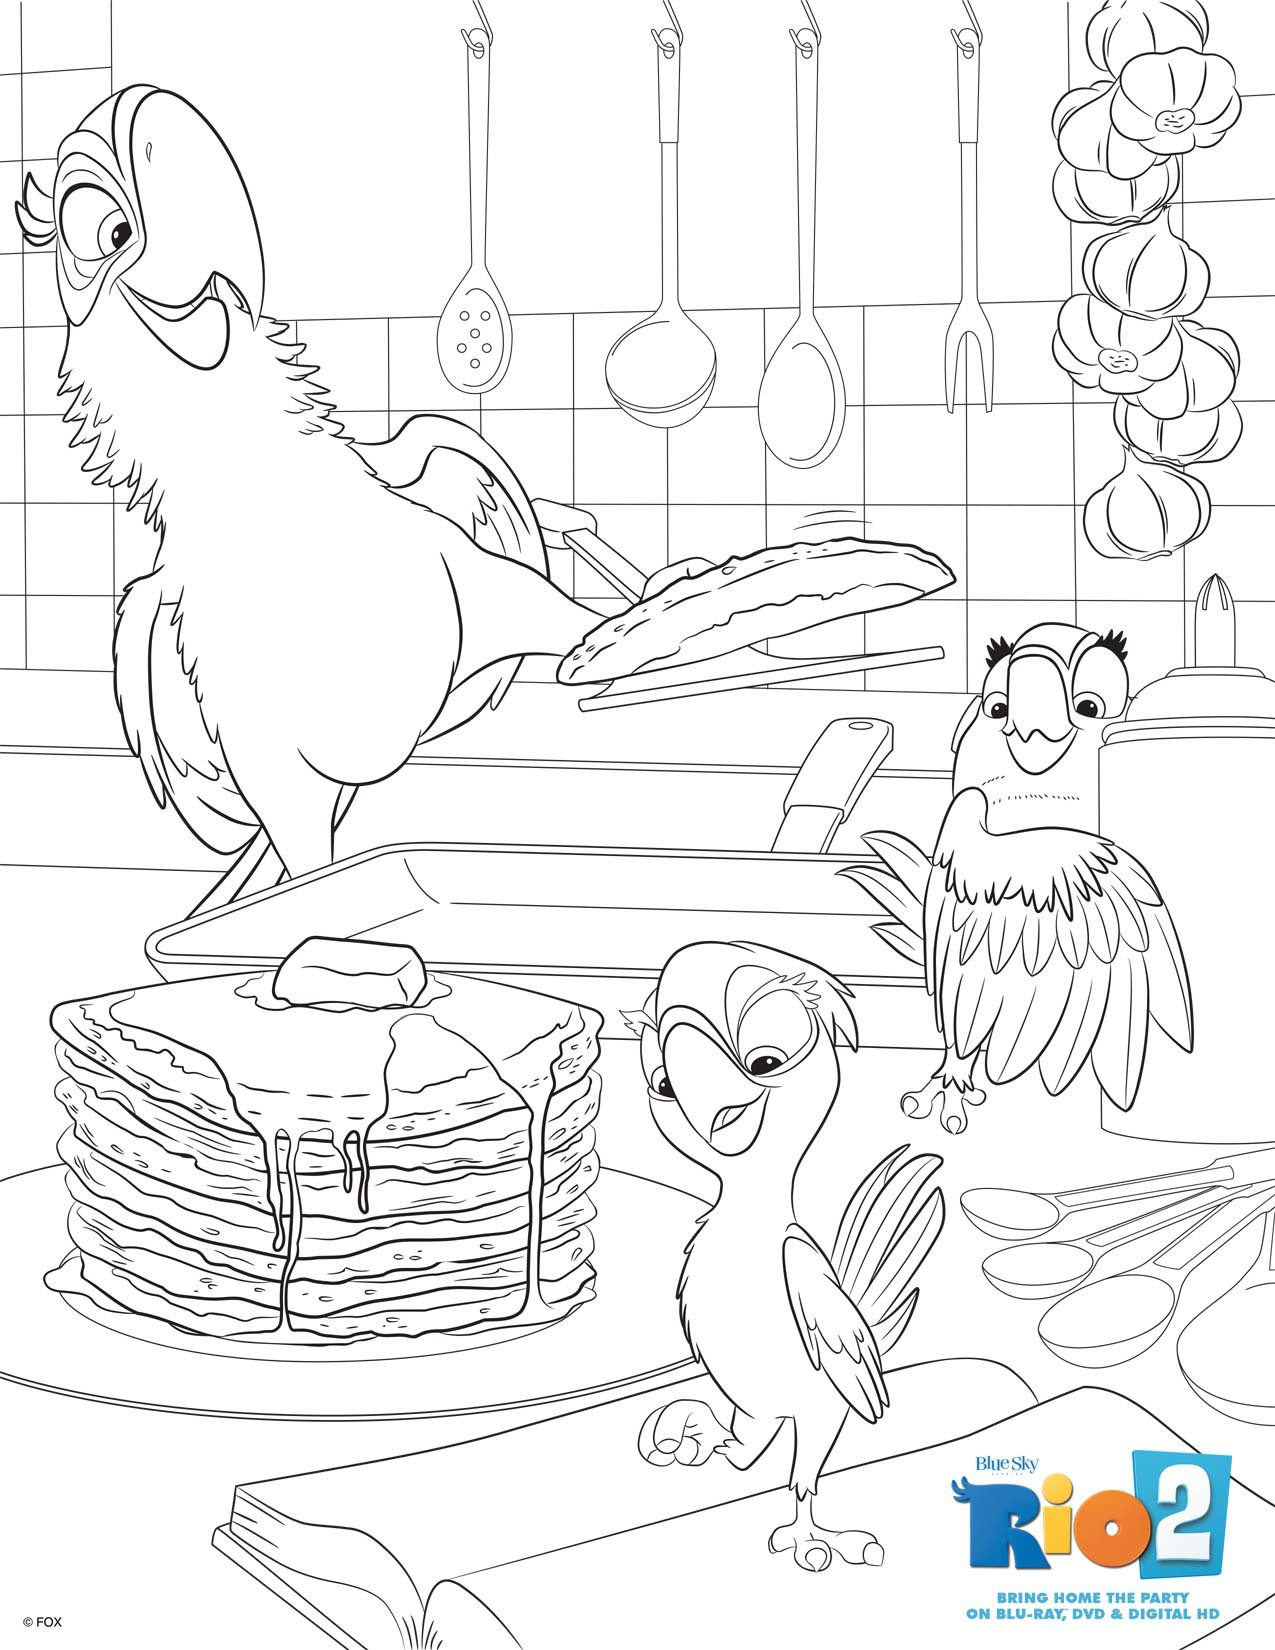 rio 2 colouring pages free downloads to enjoy this summer